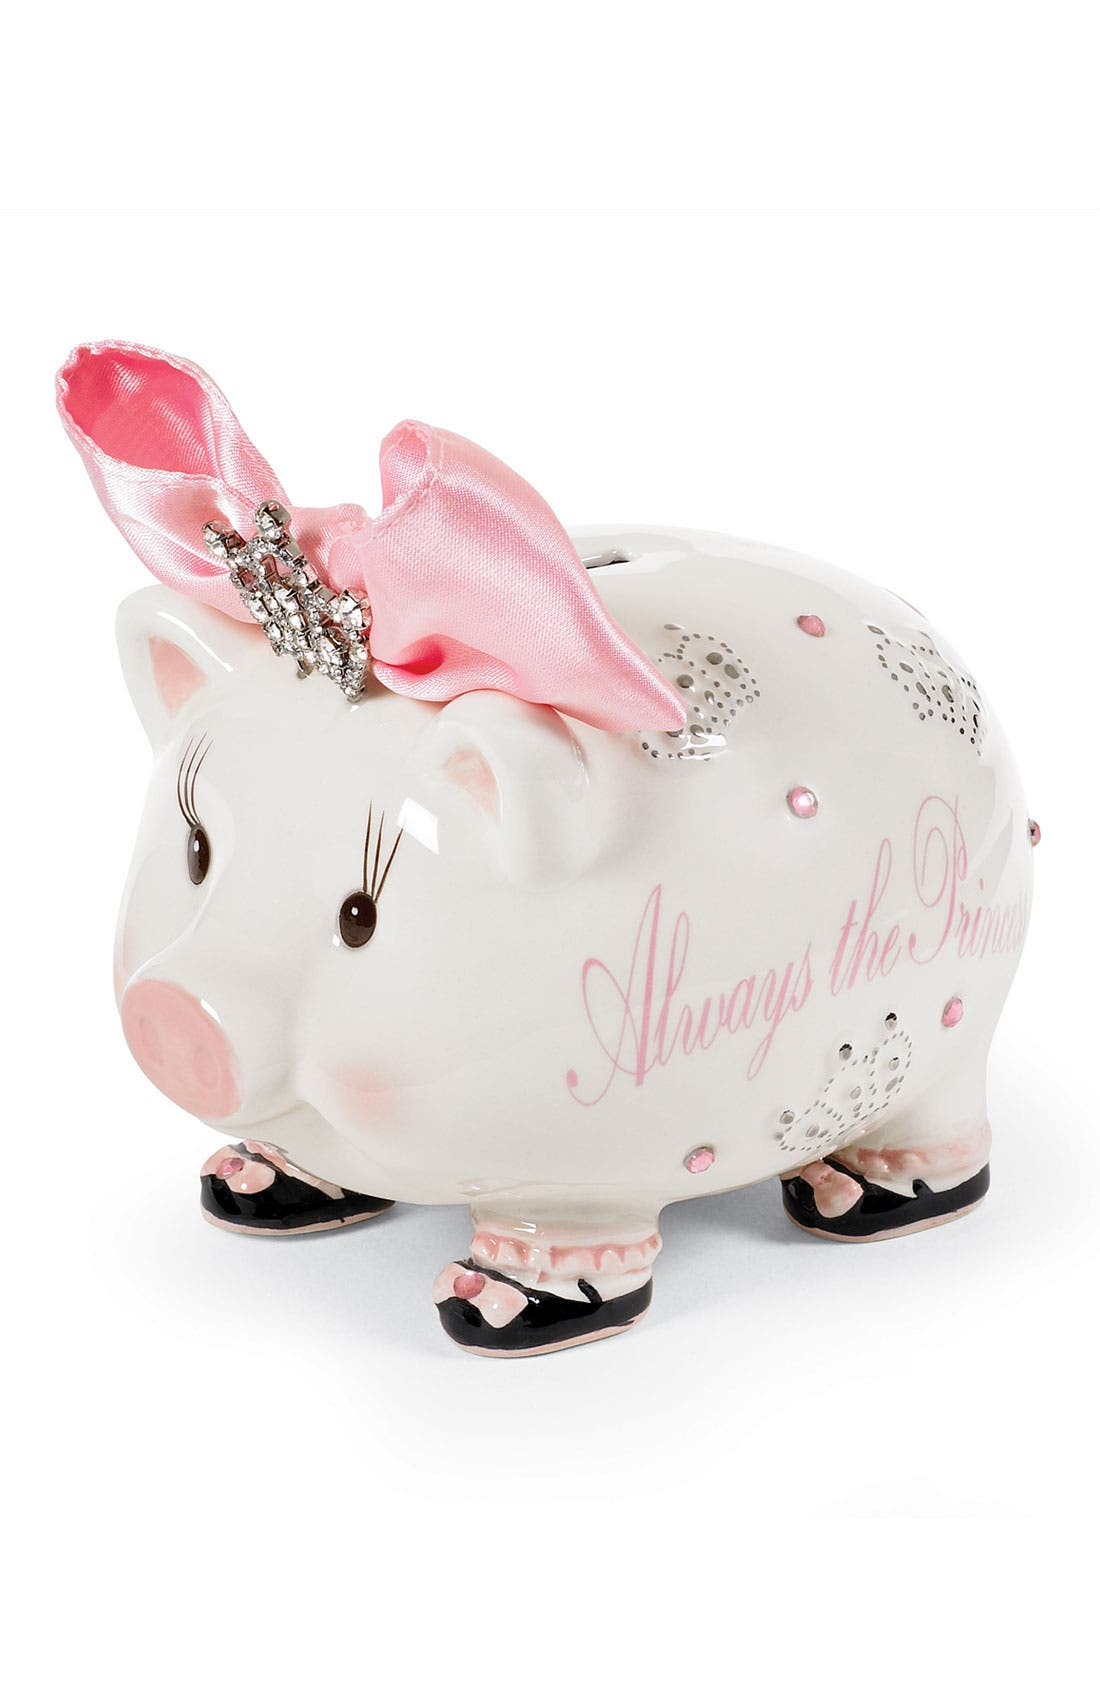 Alternate Image 1 Selected - Mud Pie 'Always the Princess' Jeweled Piggy Bank